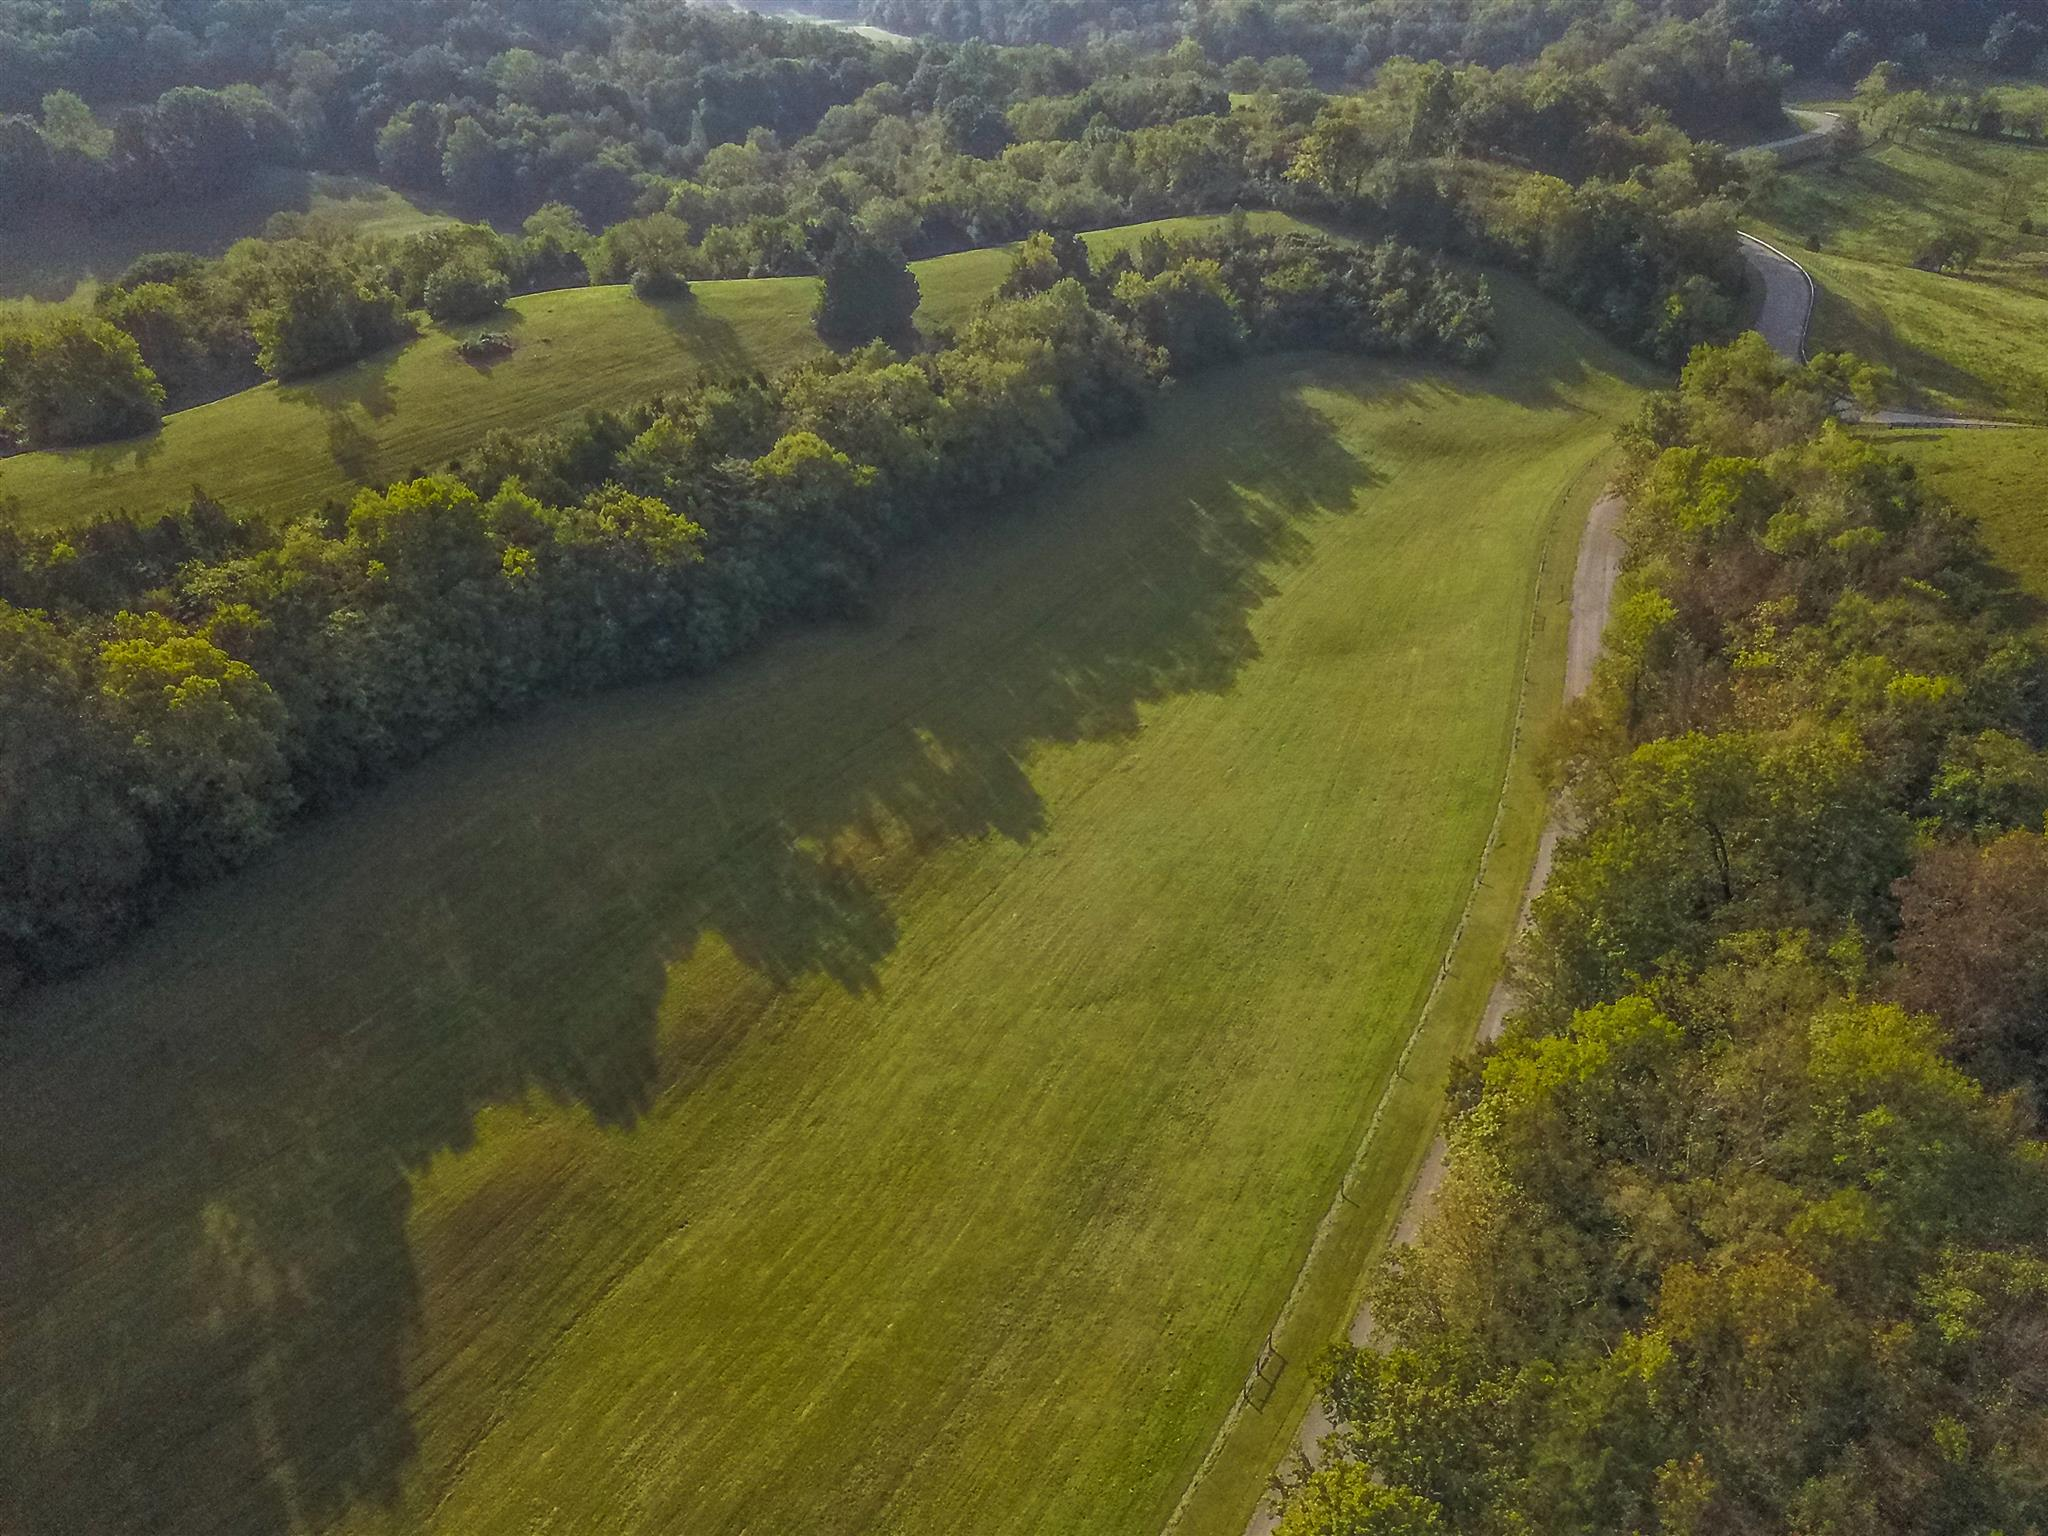 3400 Floyd Rd Parcel 5, Franklin, TN 37064 - Franklin, TN real estate listing